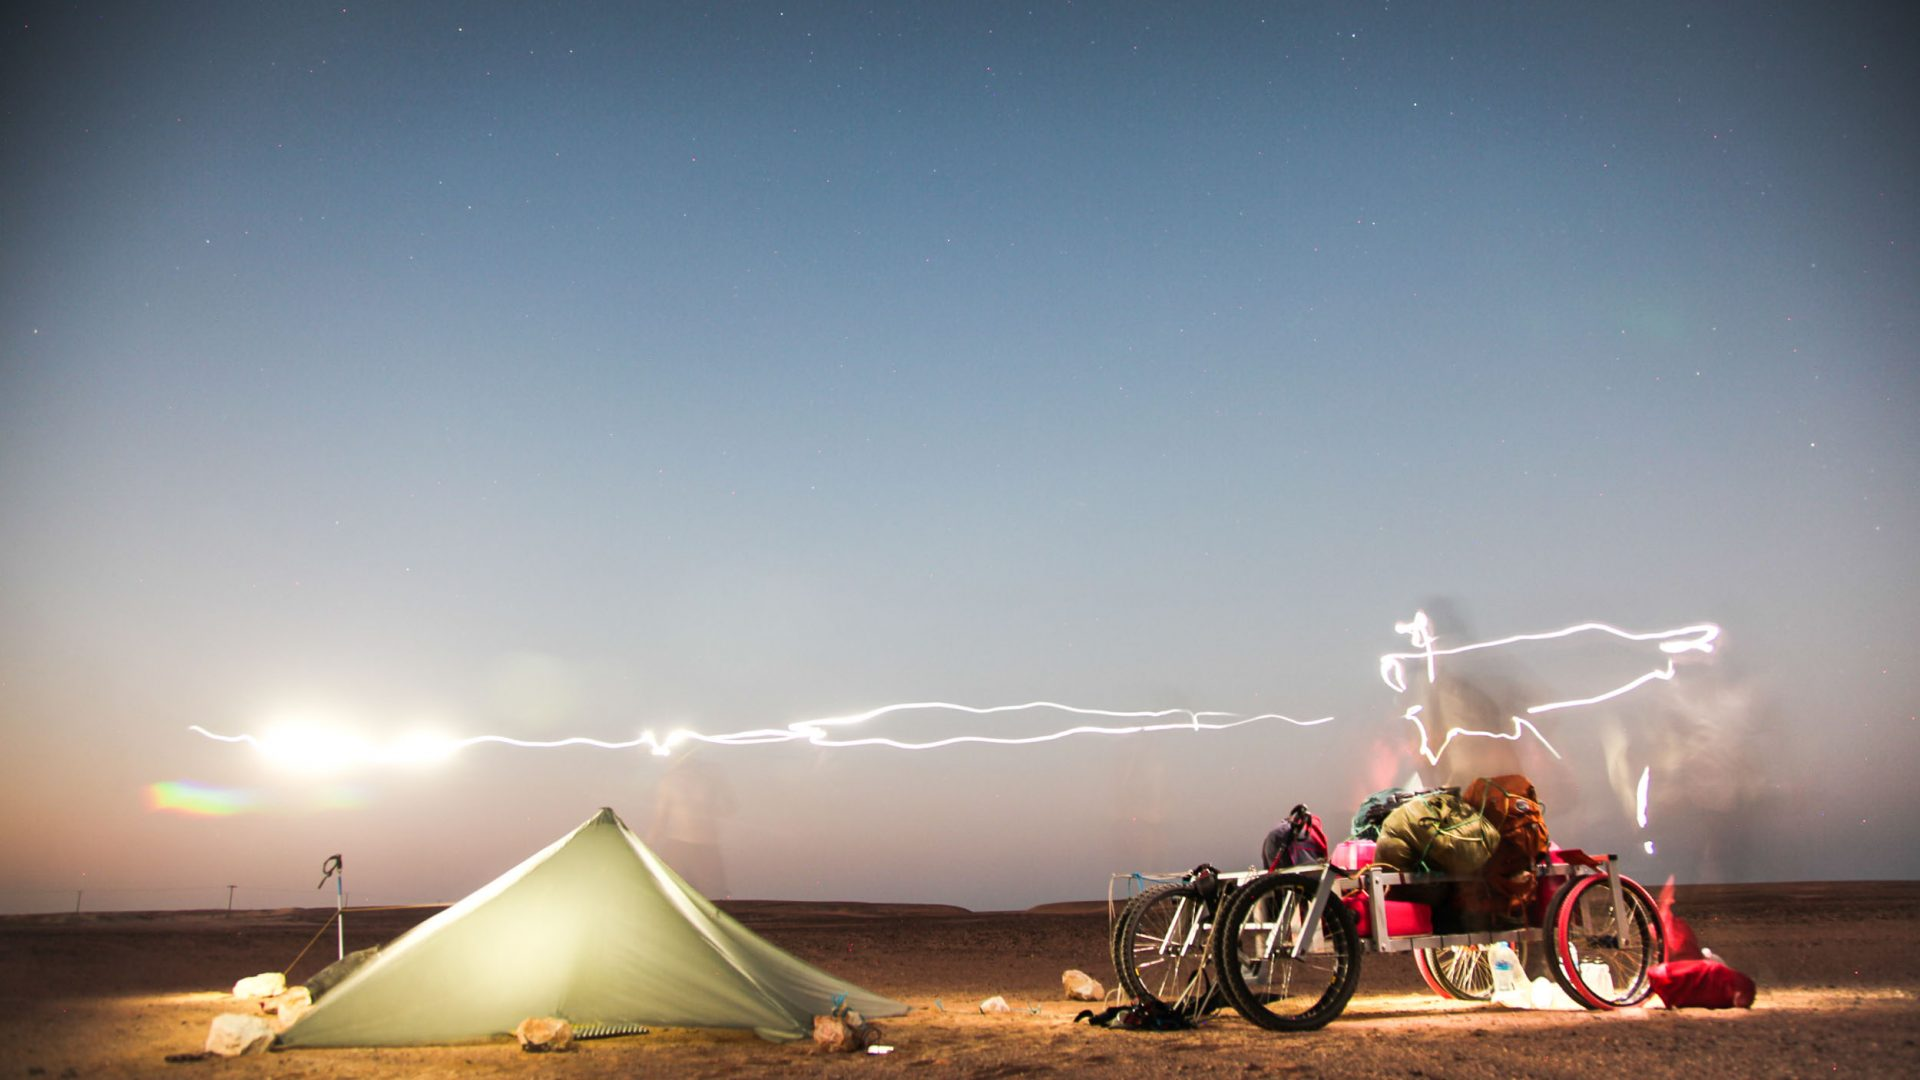 Camping at night in the Empty Quarter.